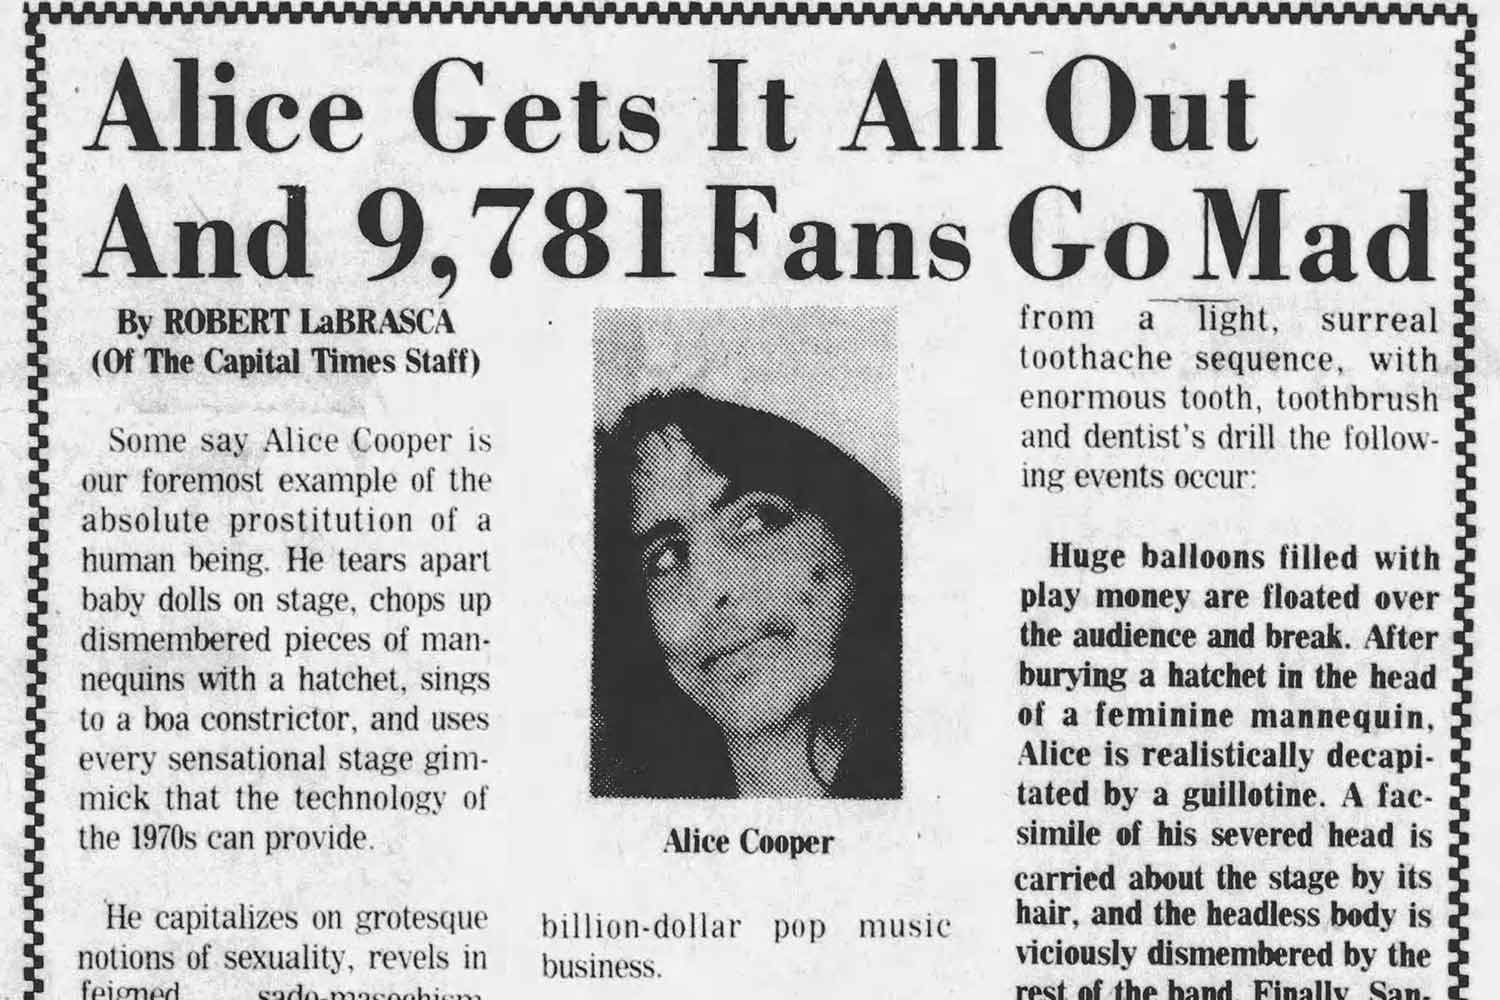 Cap Times review of Alice Cooper